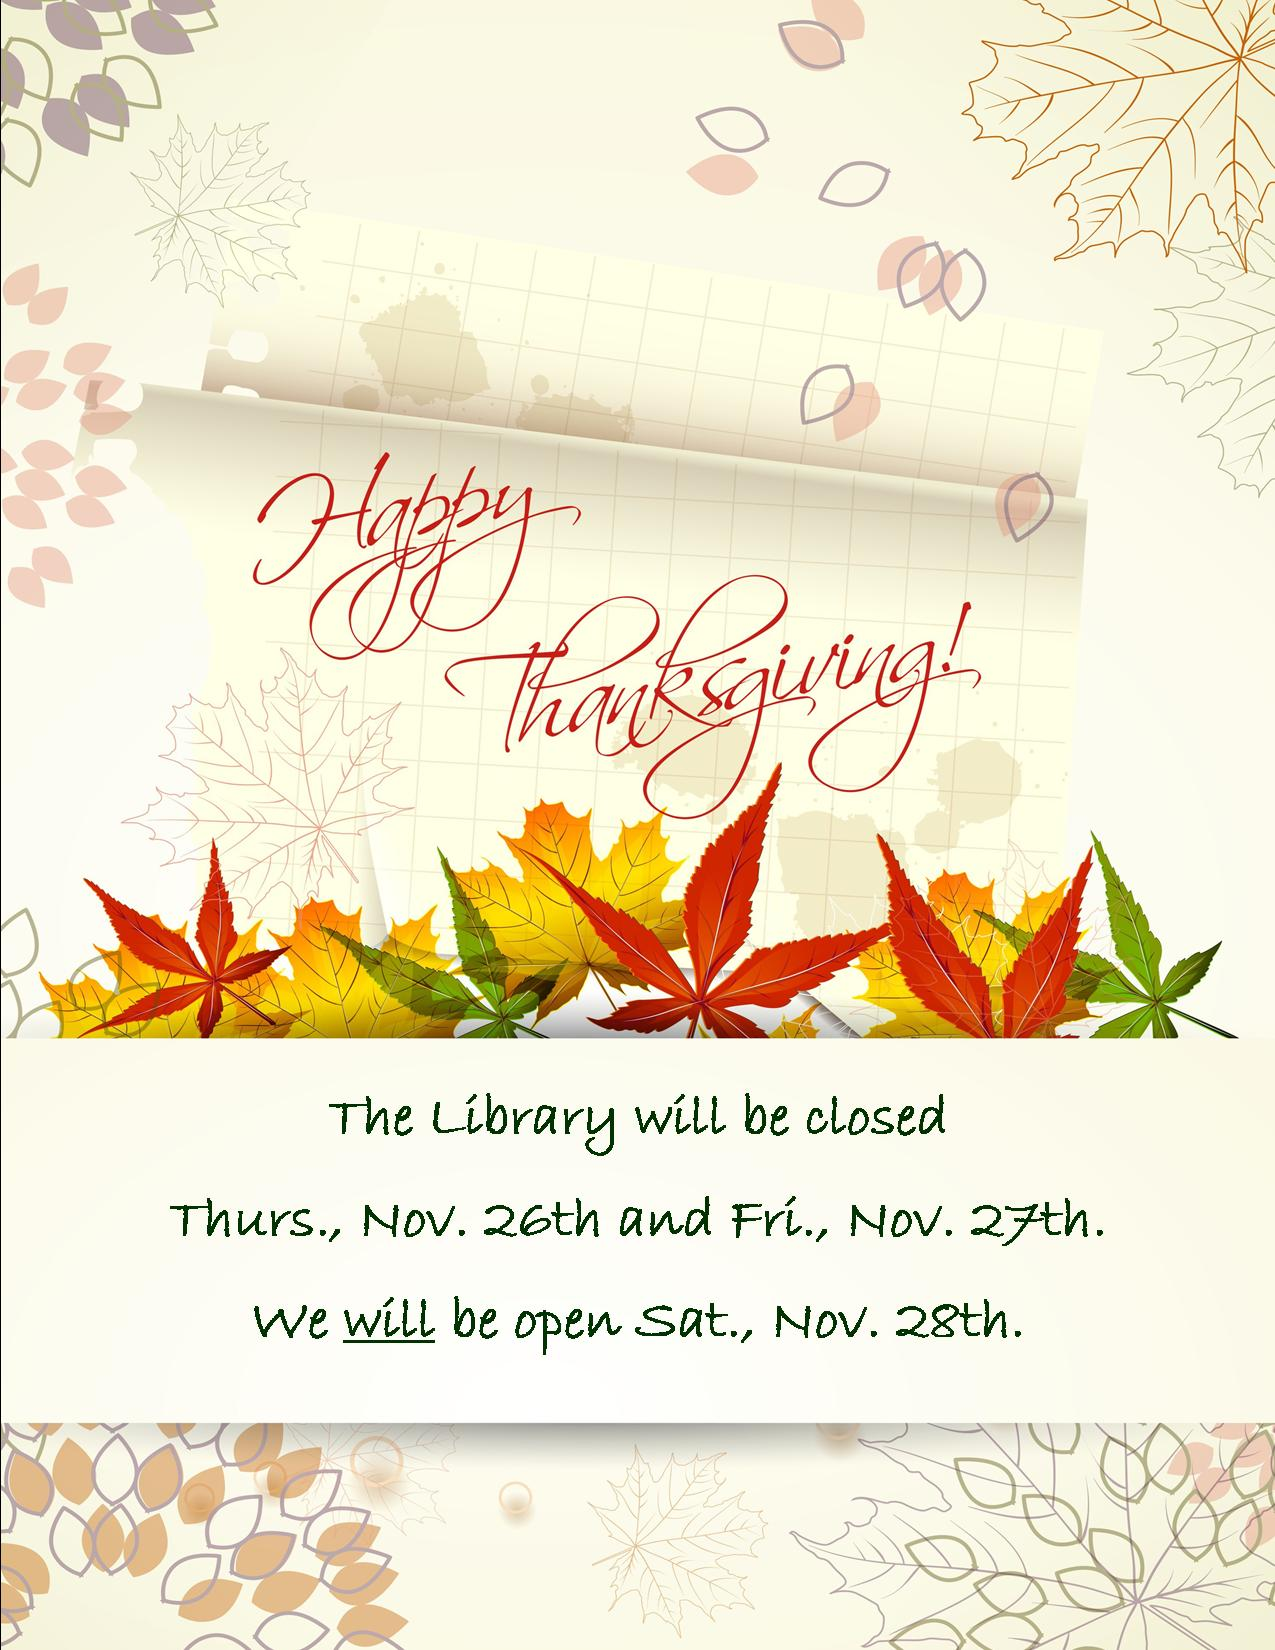 Holiday hours: Library closed 11/26 & 11/27. Open 11/28.